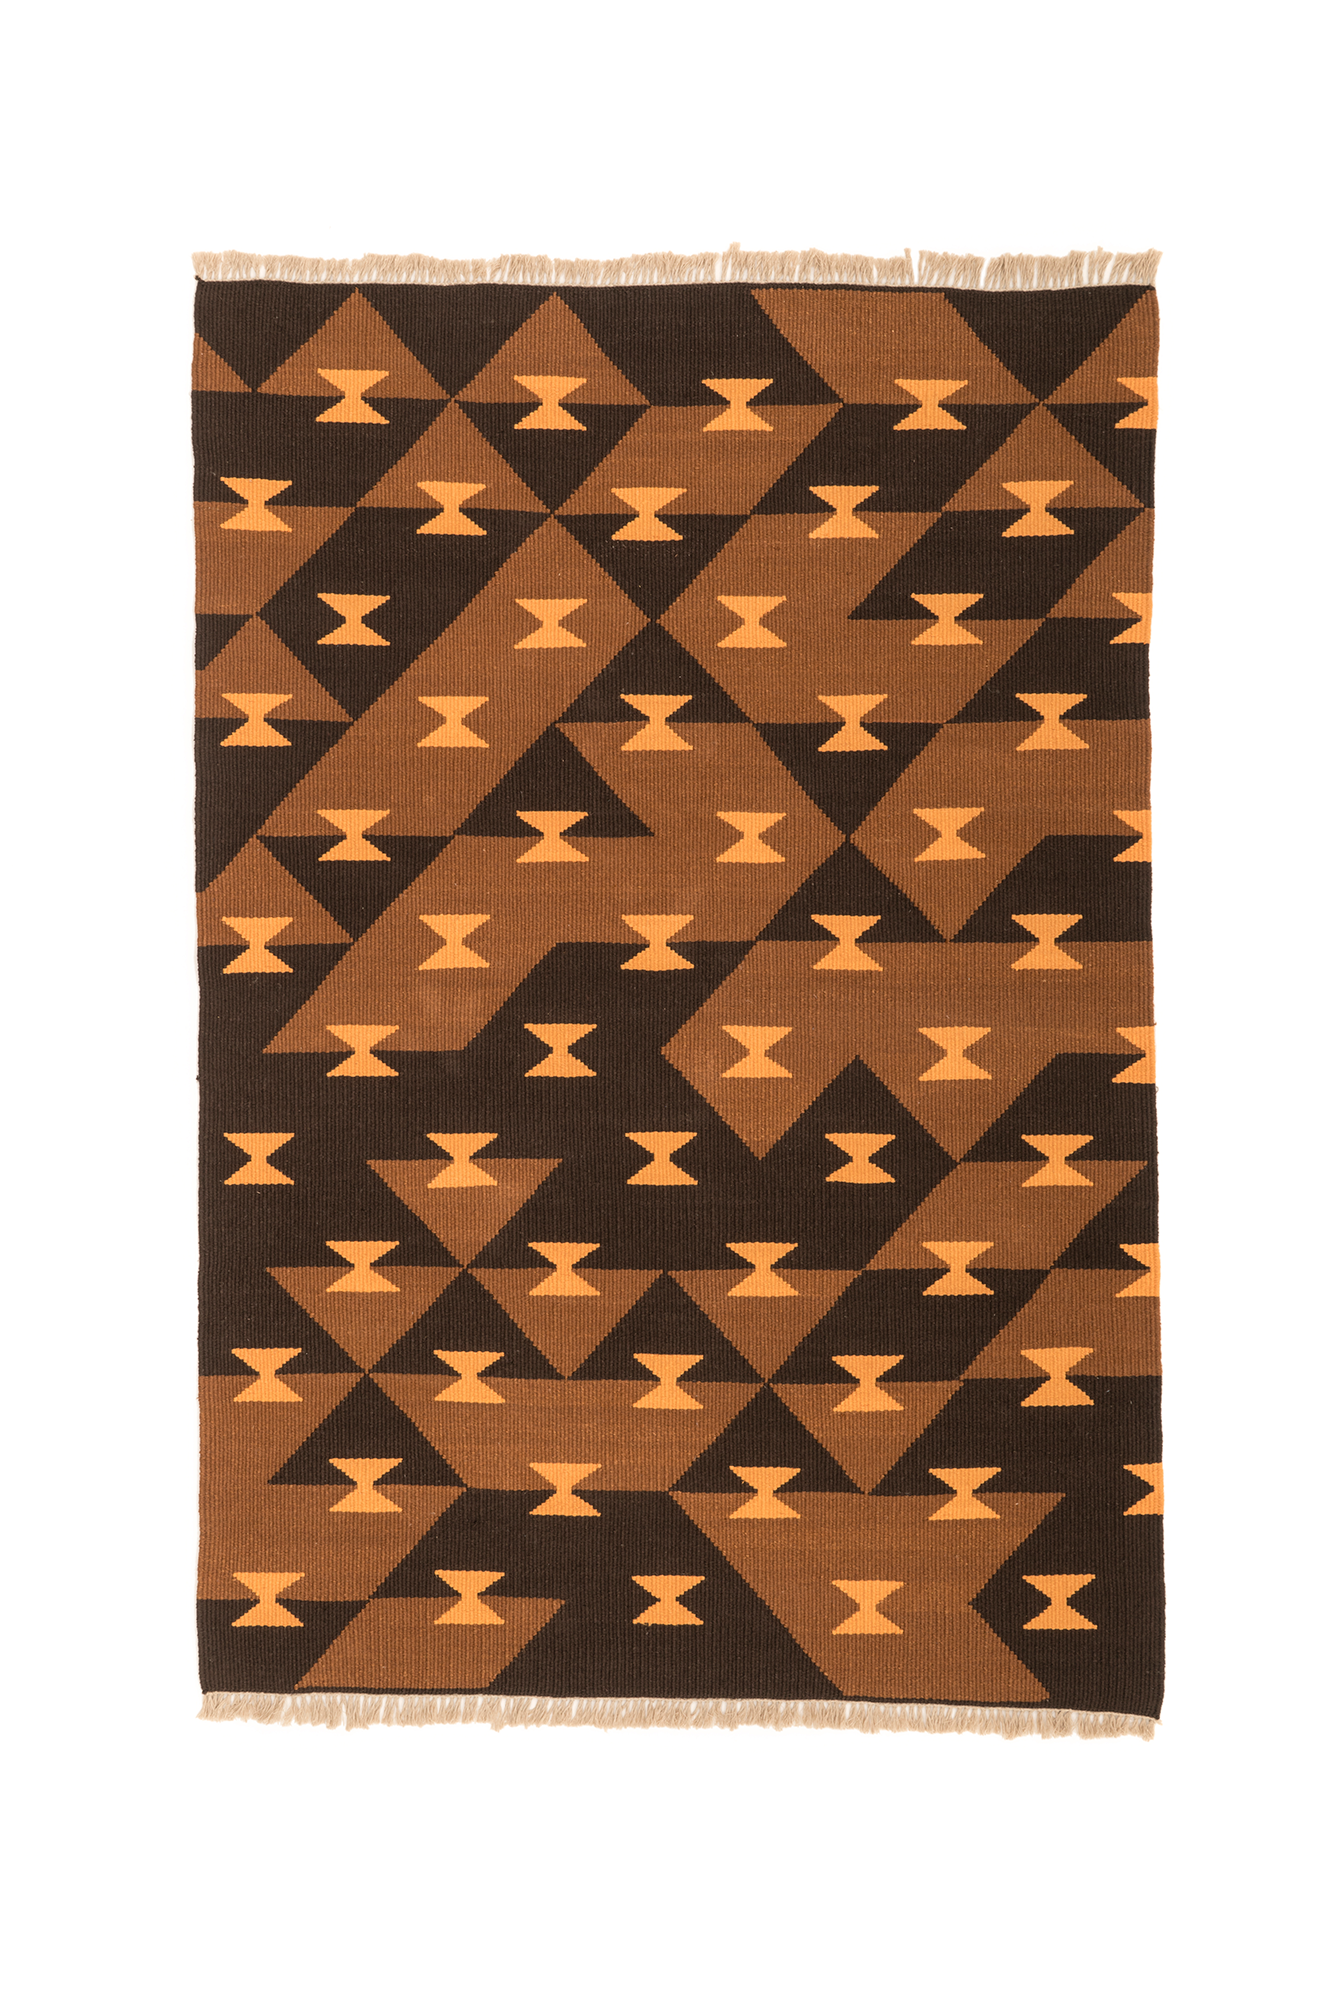 """Game Board"" Handwoven Hemp Designer Rug in Shades of Brown"